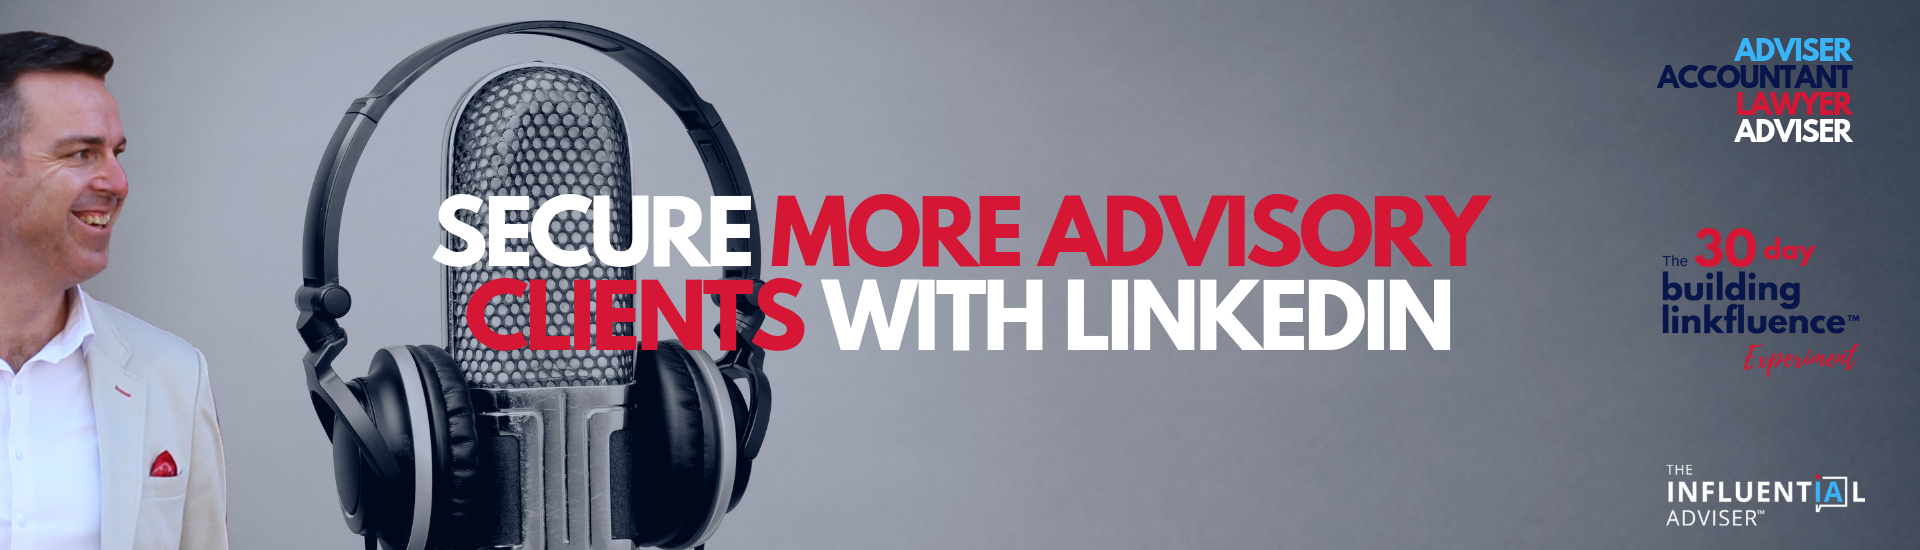 More advisory clients with Linkedin